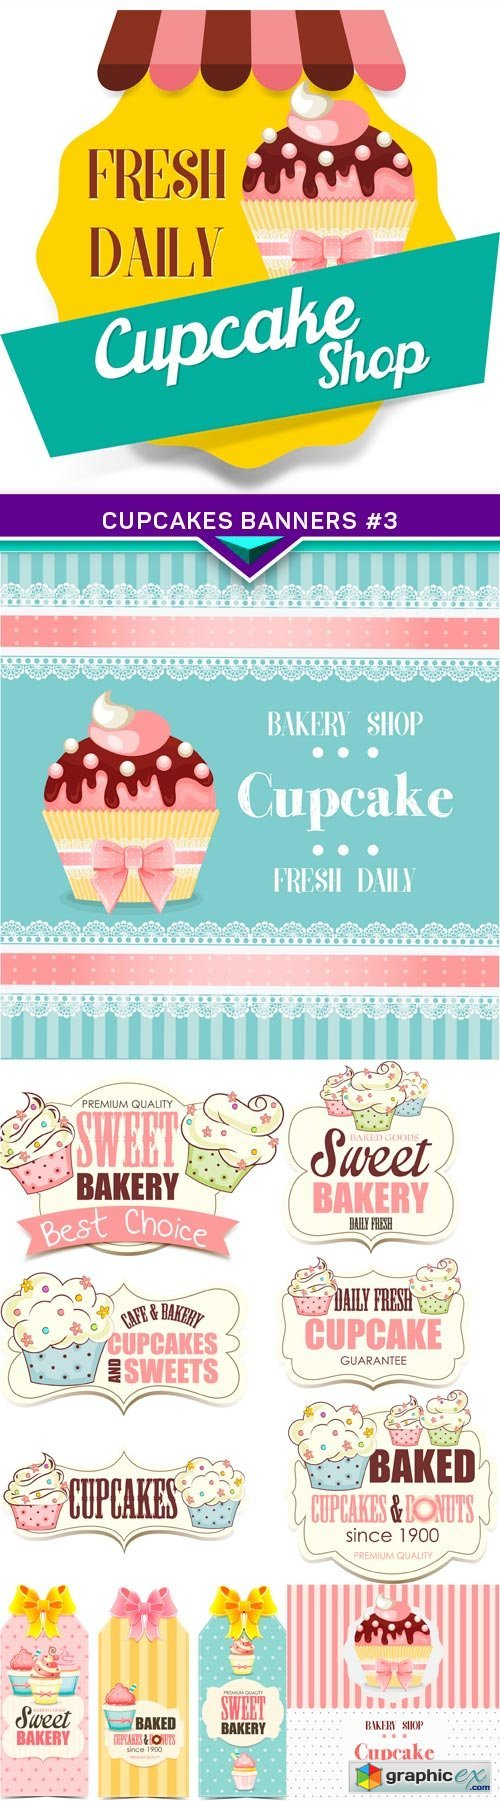 Cupcakes banners #3 5X EPS